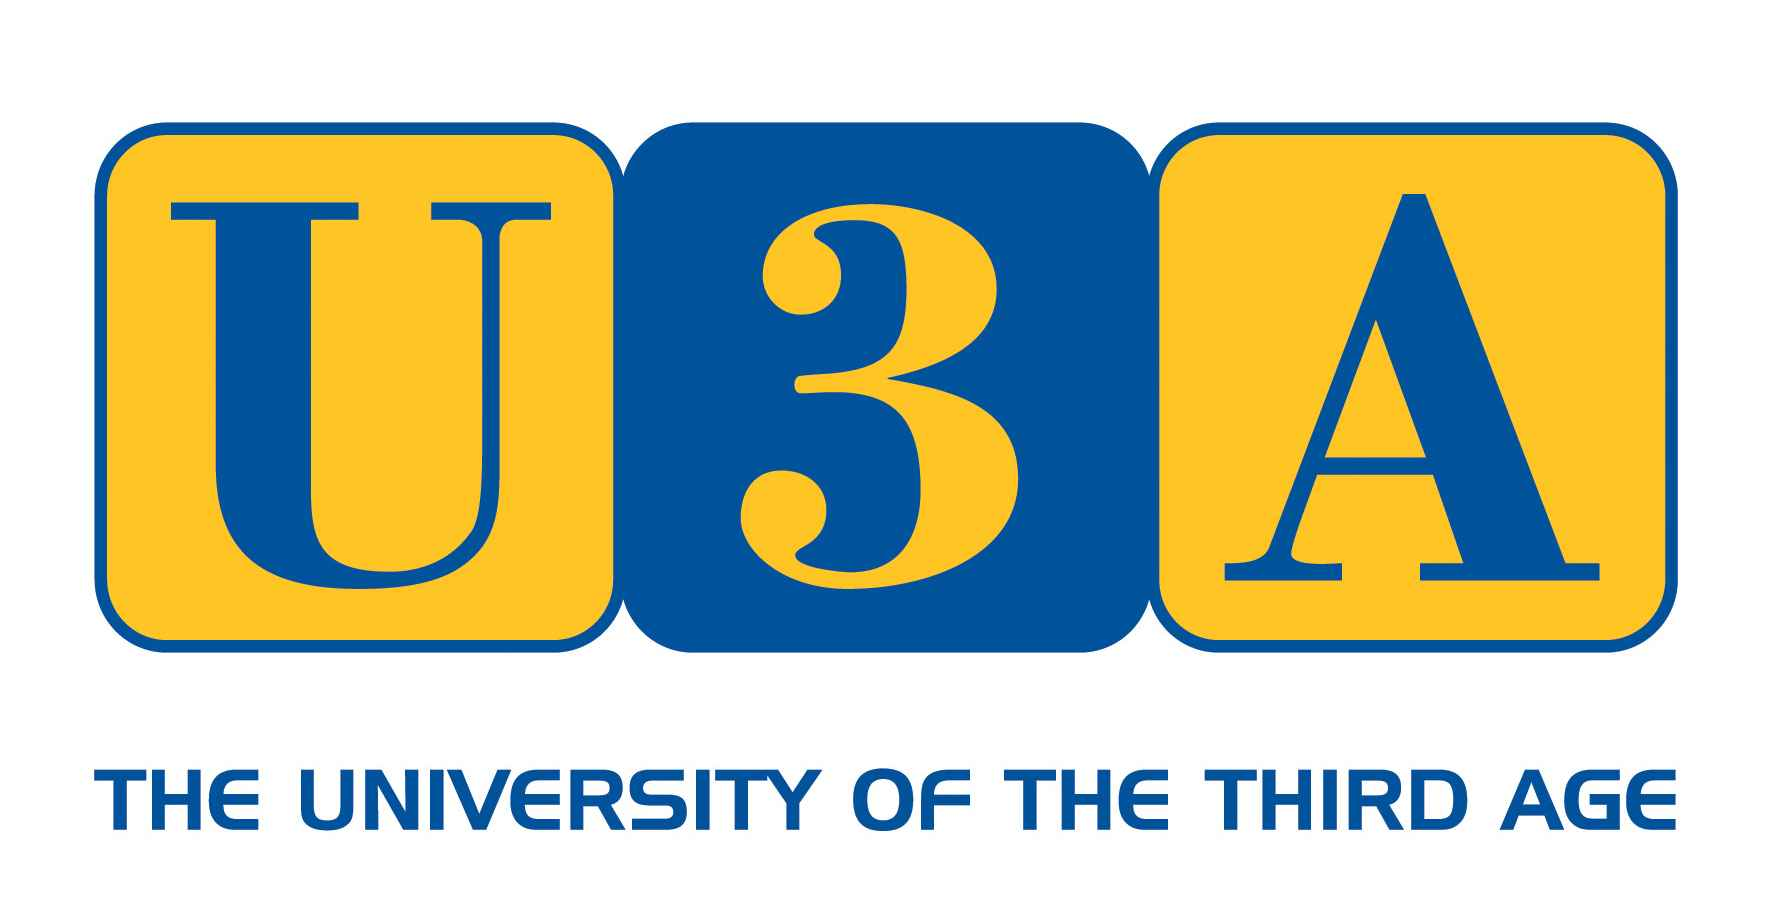 U3A - The University of the Third Age